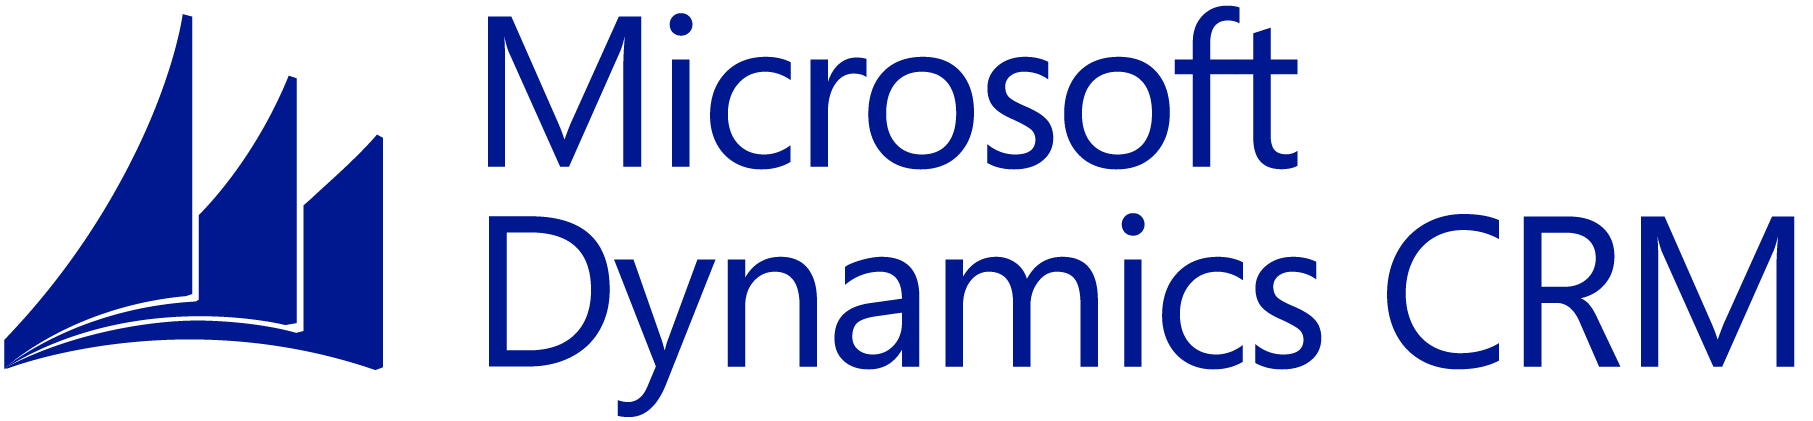 QuoteWerks + Microsoft Dynamics CRM